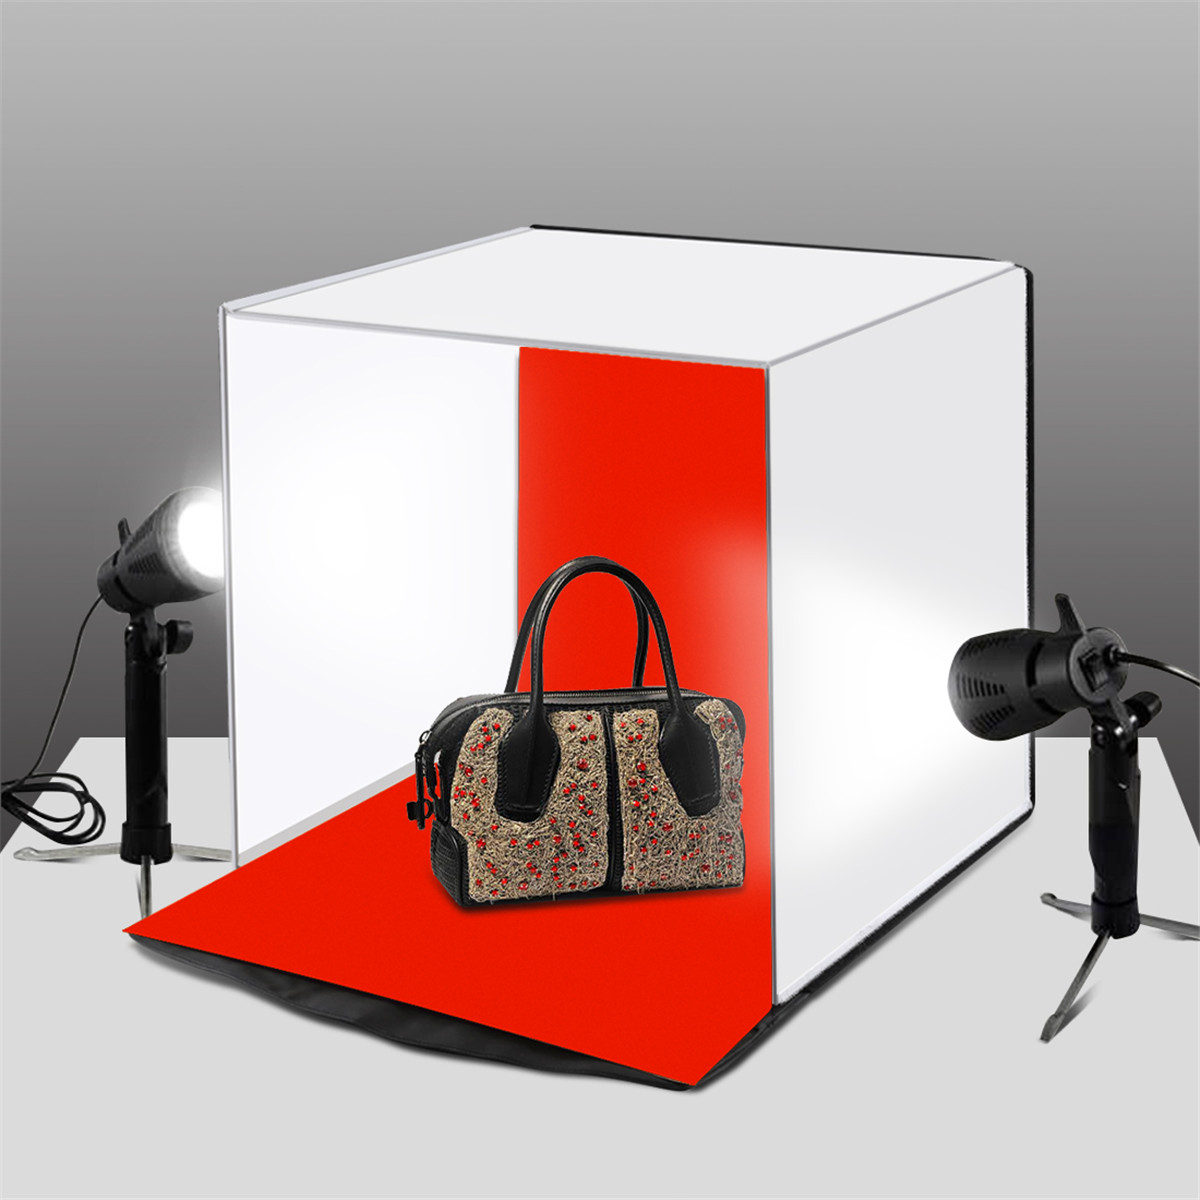 New Arrival 40x40x40cm Softbox Portable Photography Boxes Photo Studio Box Photography Backdrop Room Mini Tent